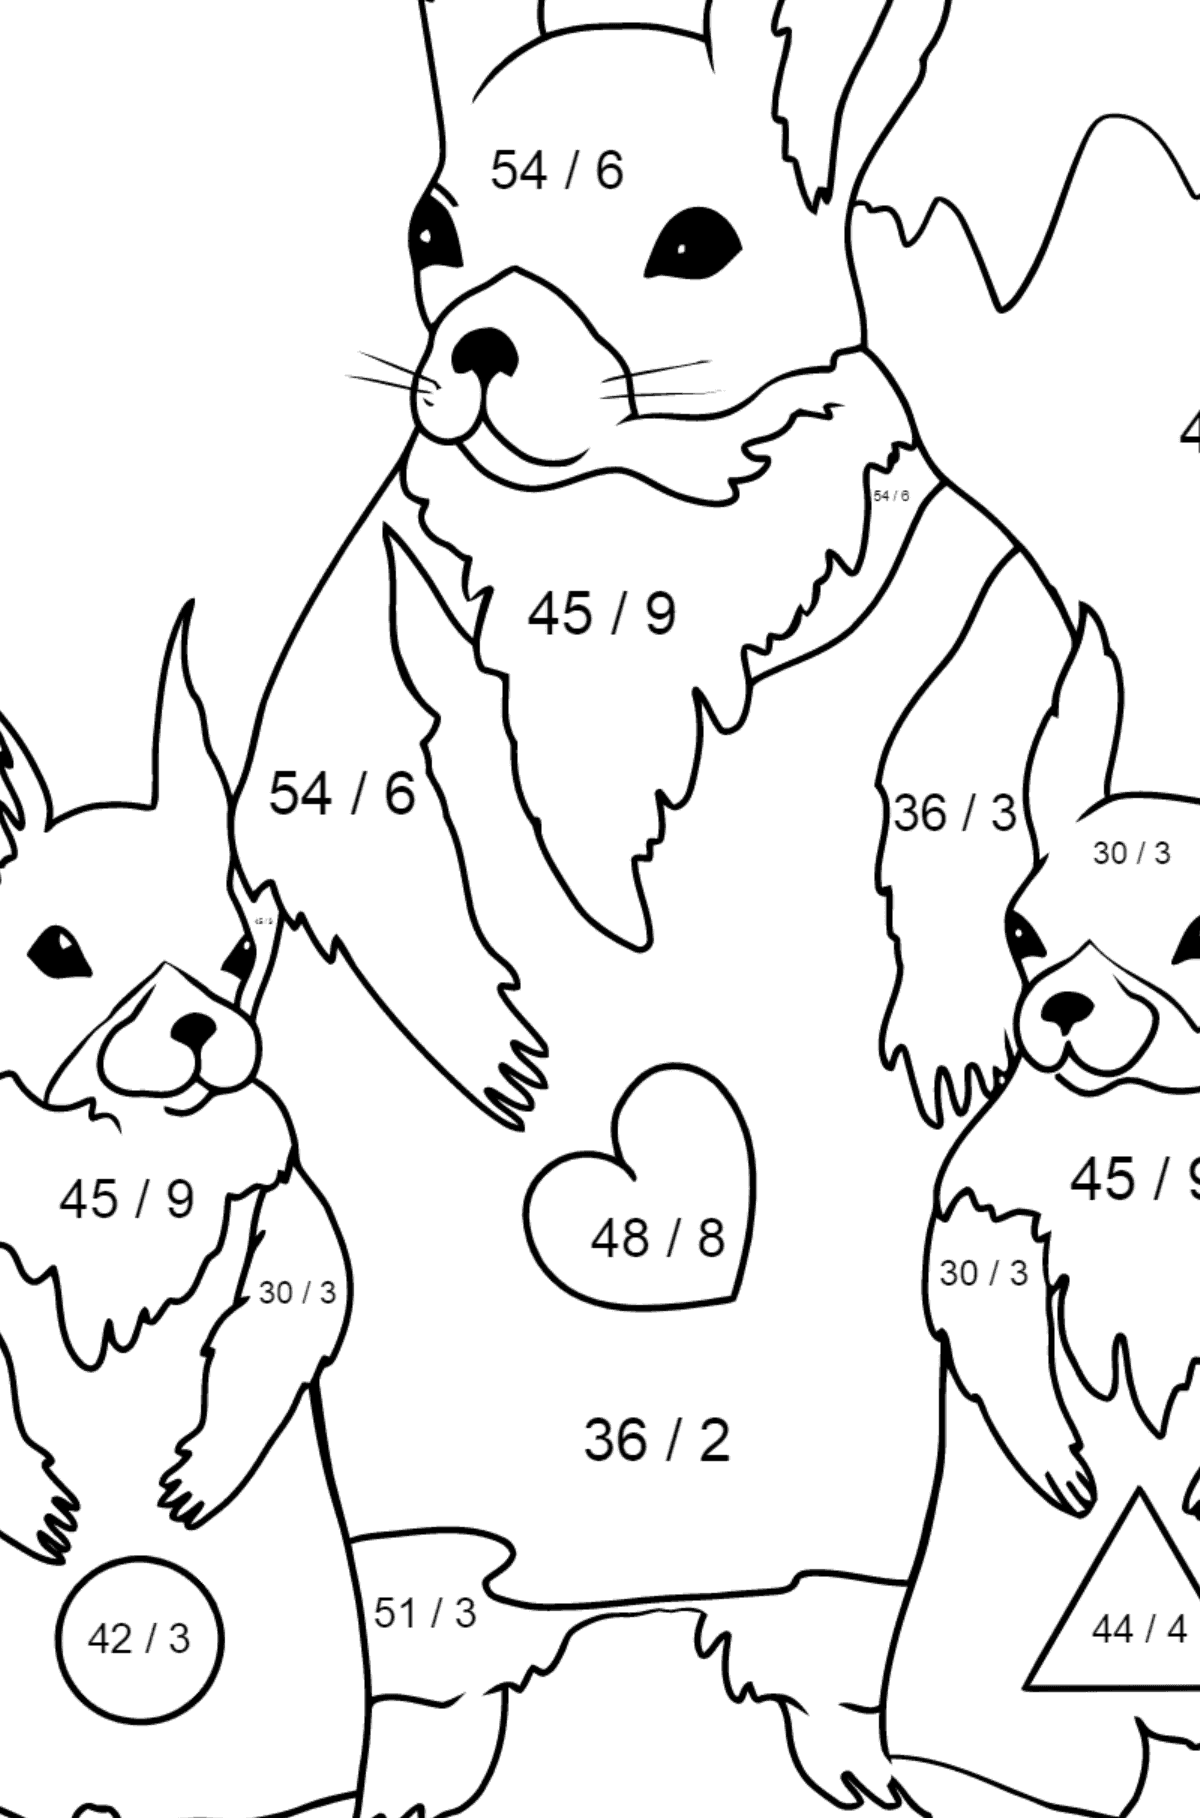 Spring Coloring Page - Beautiful Squirrels for Kids  - Color by Number Division